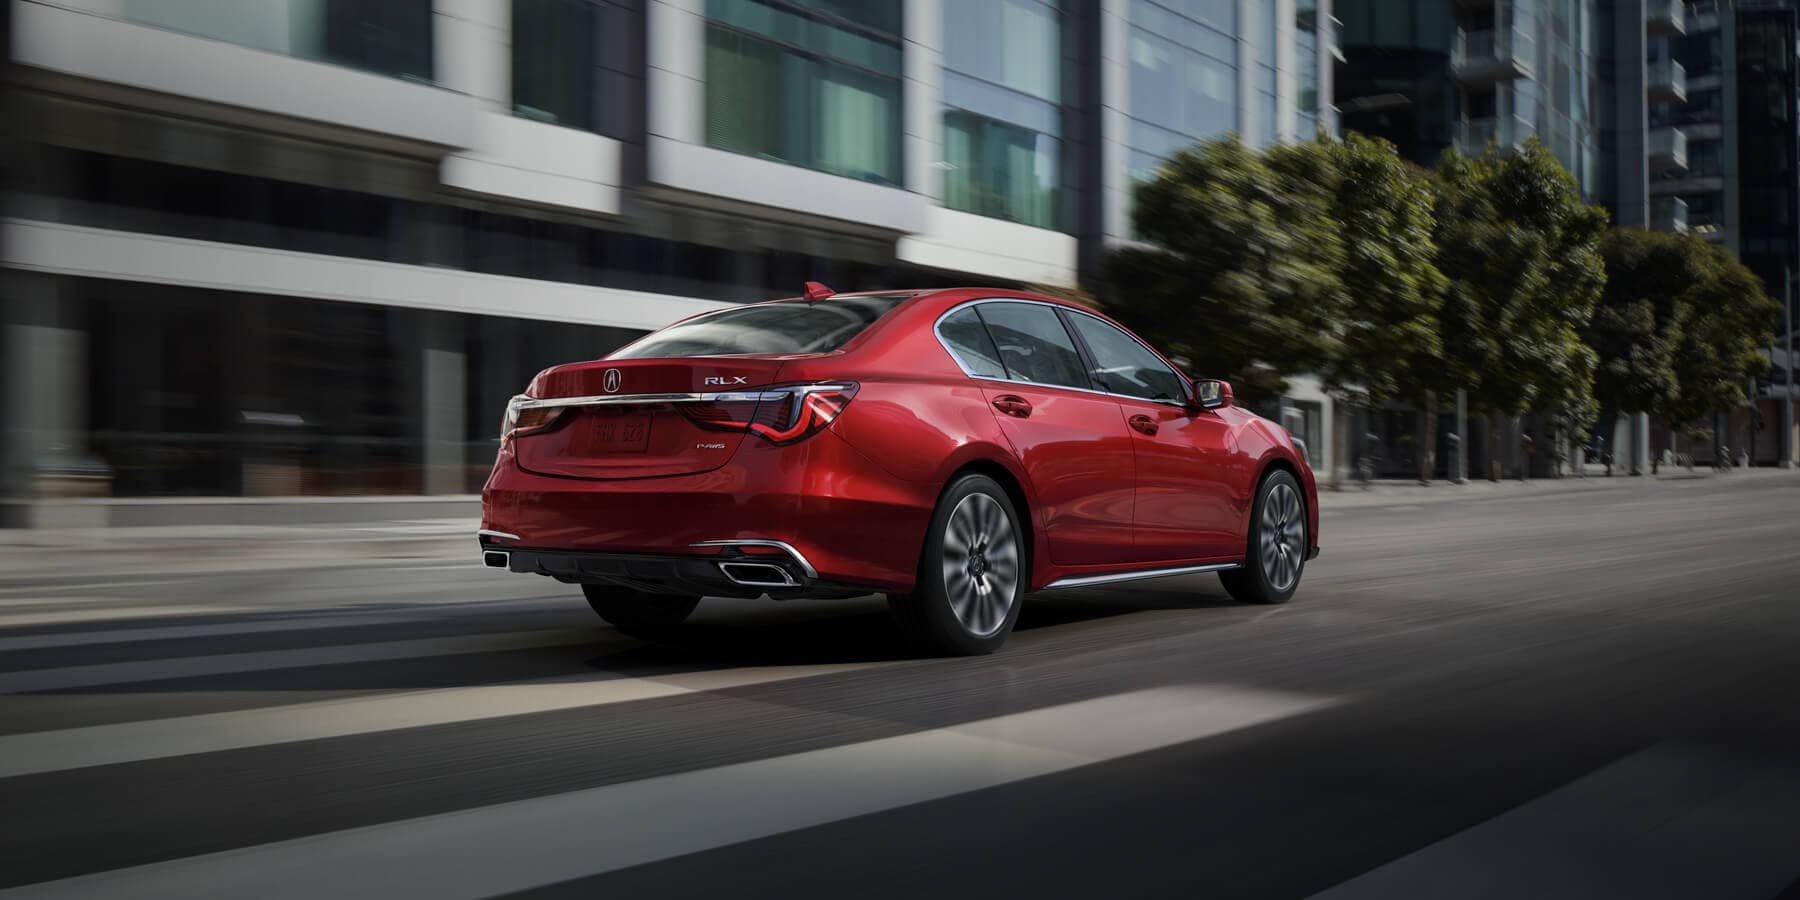 2020 Acura RLX Brilliant Red Metallic Rear Angle